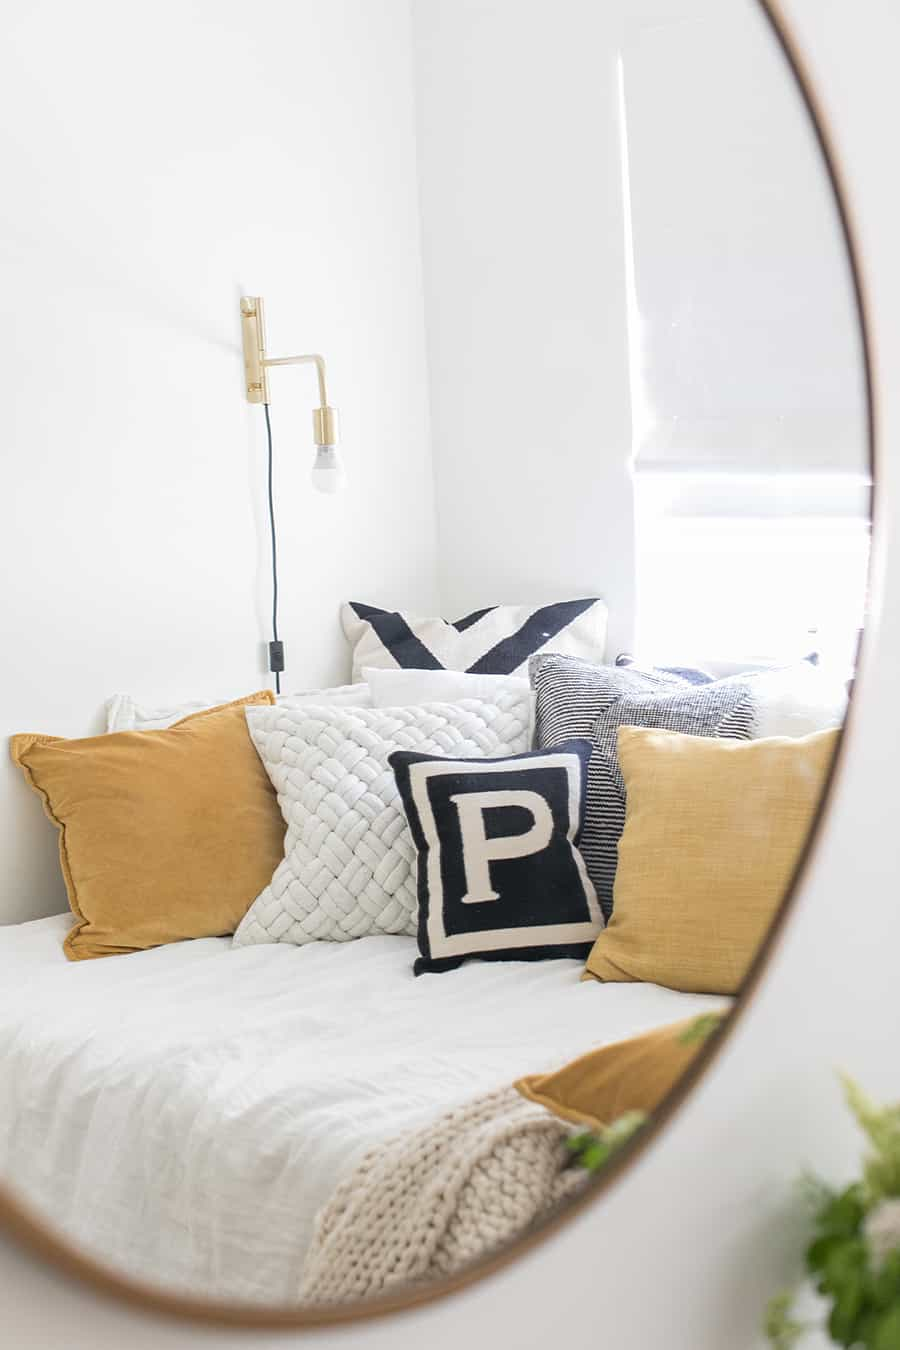 Photo in a mirror with pillows and gold light